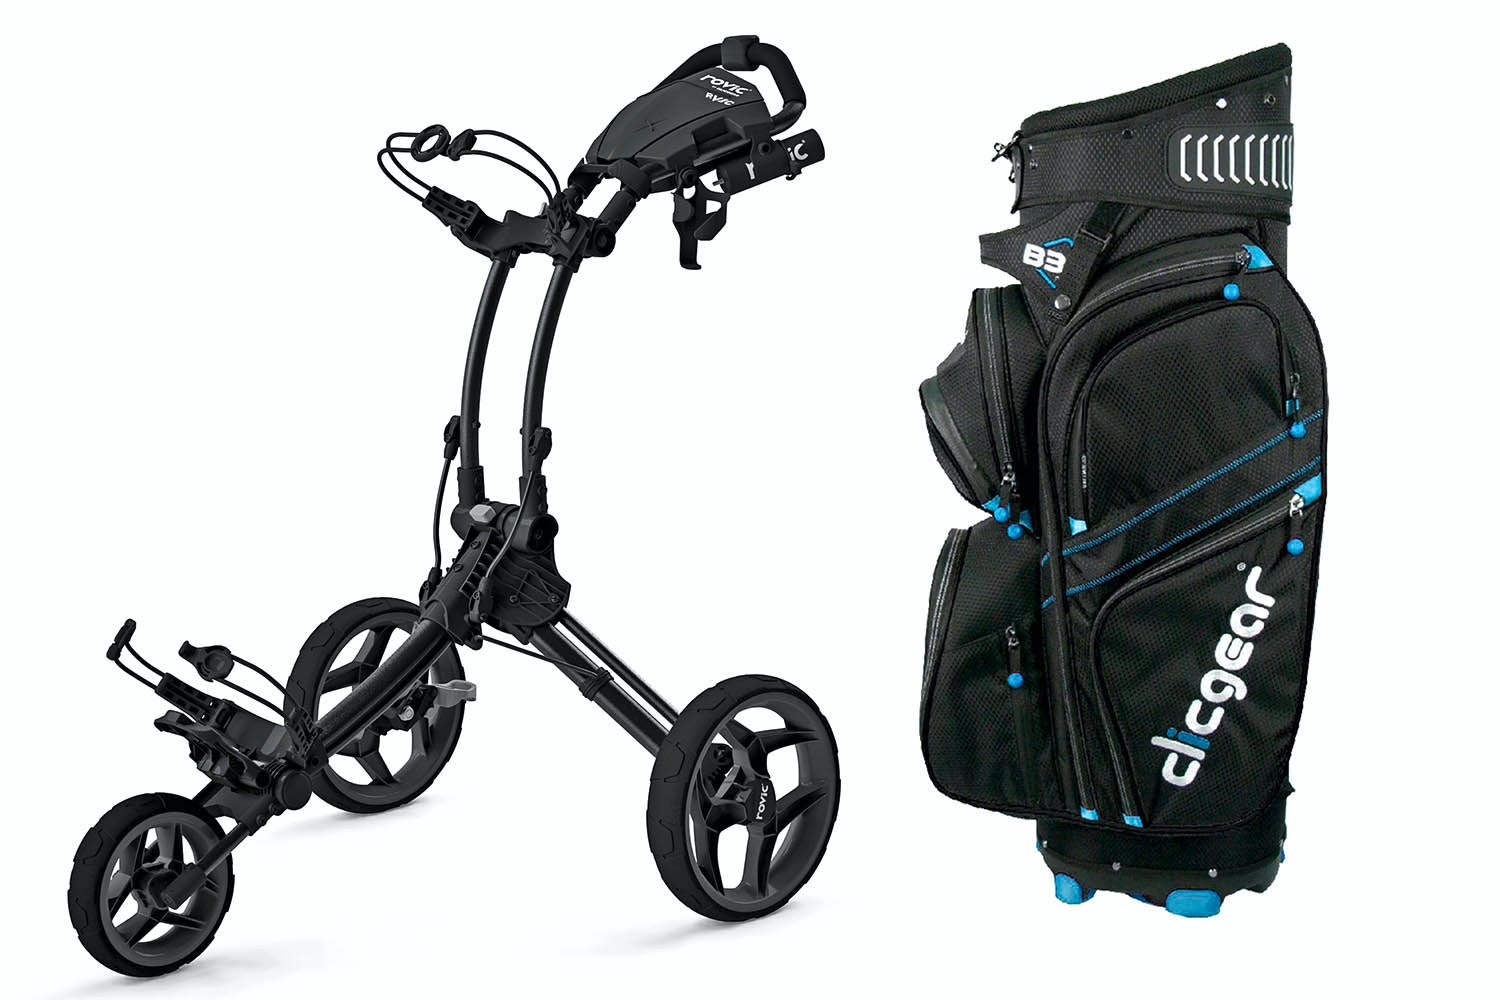 WIN a Clicgear trolley and bag sweepstakes